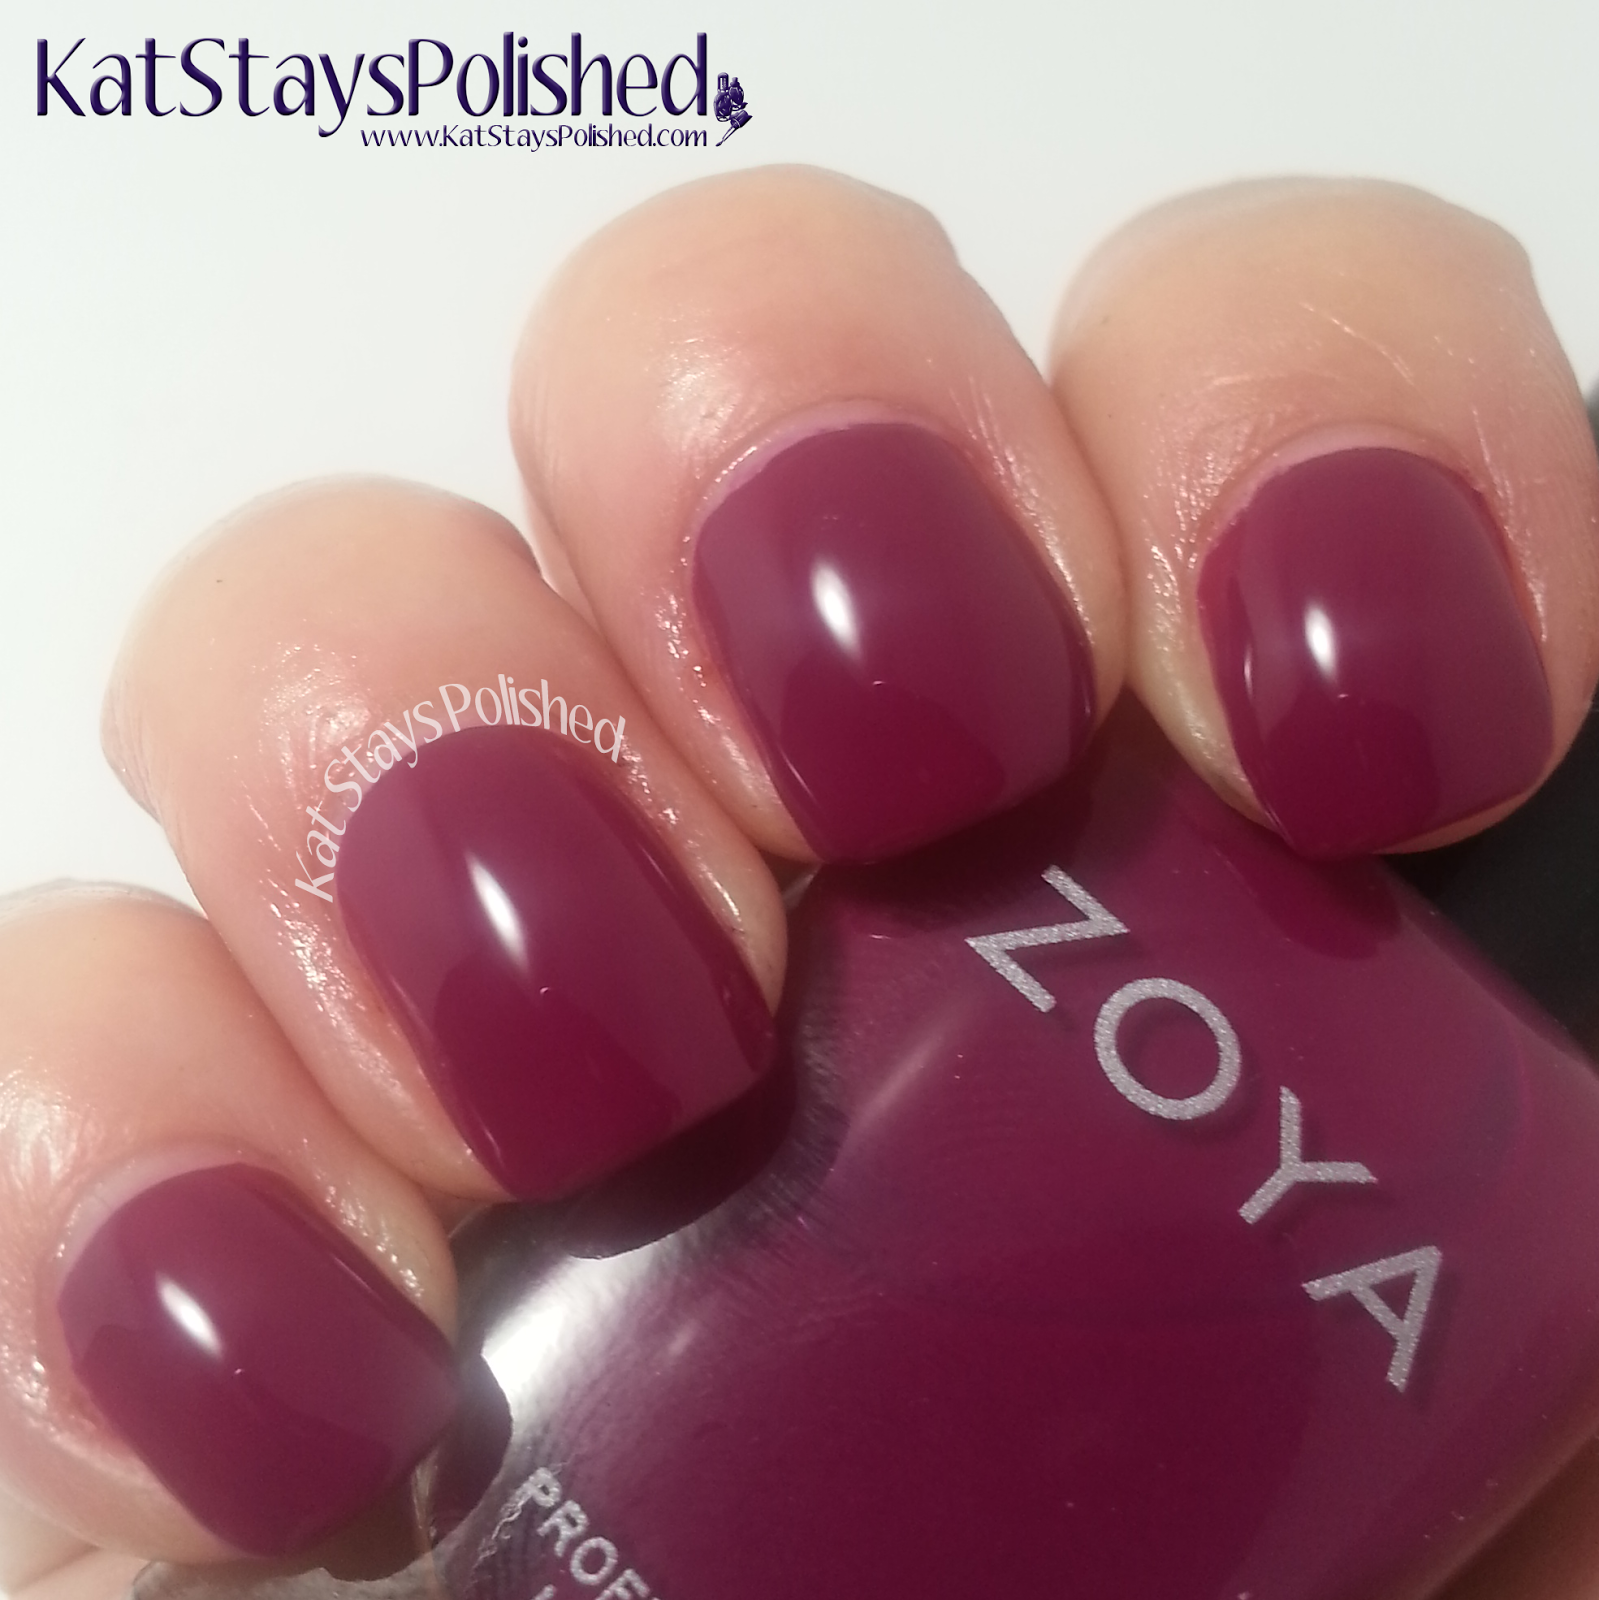 Zoya Entice 2014 - Margo | Kat Stays Polished